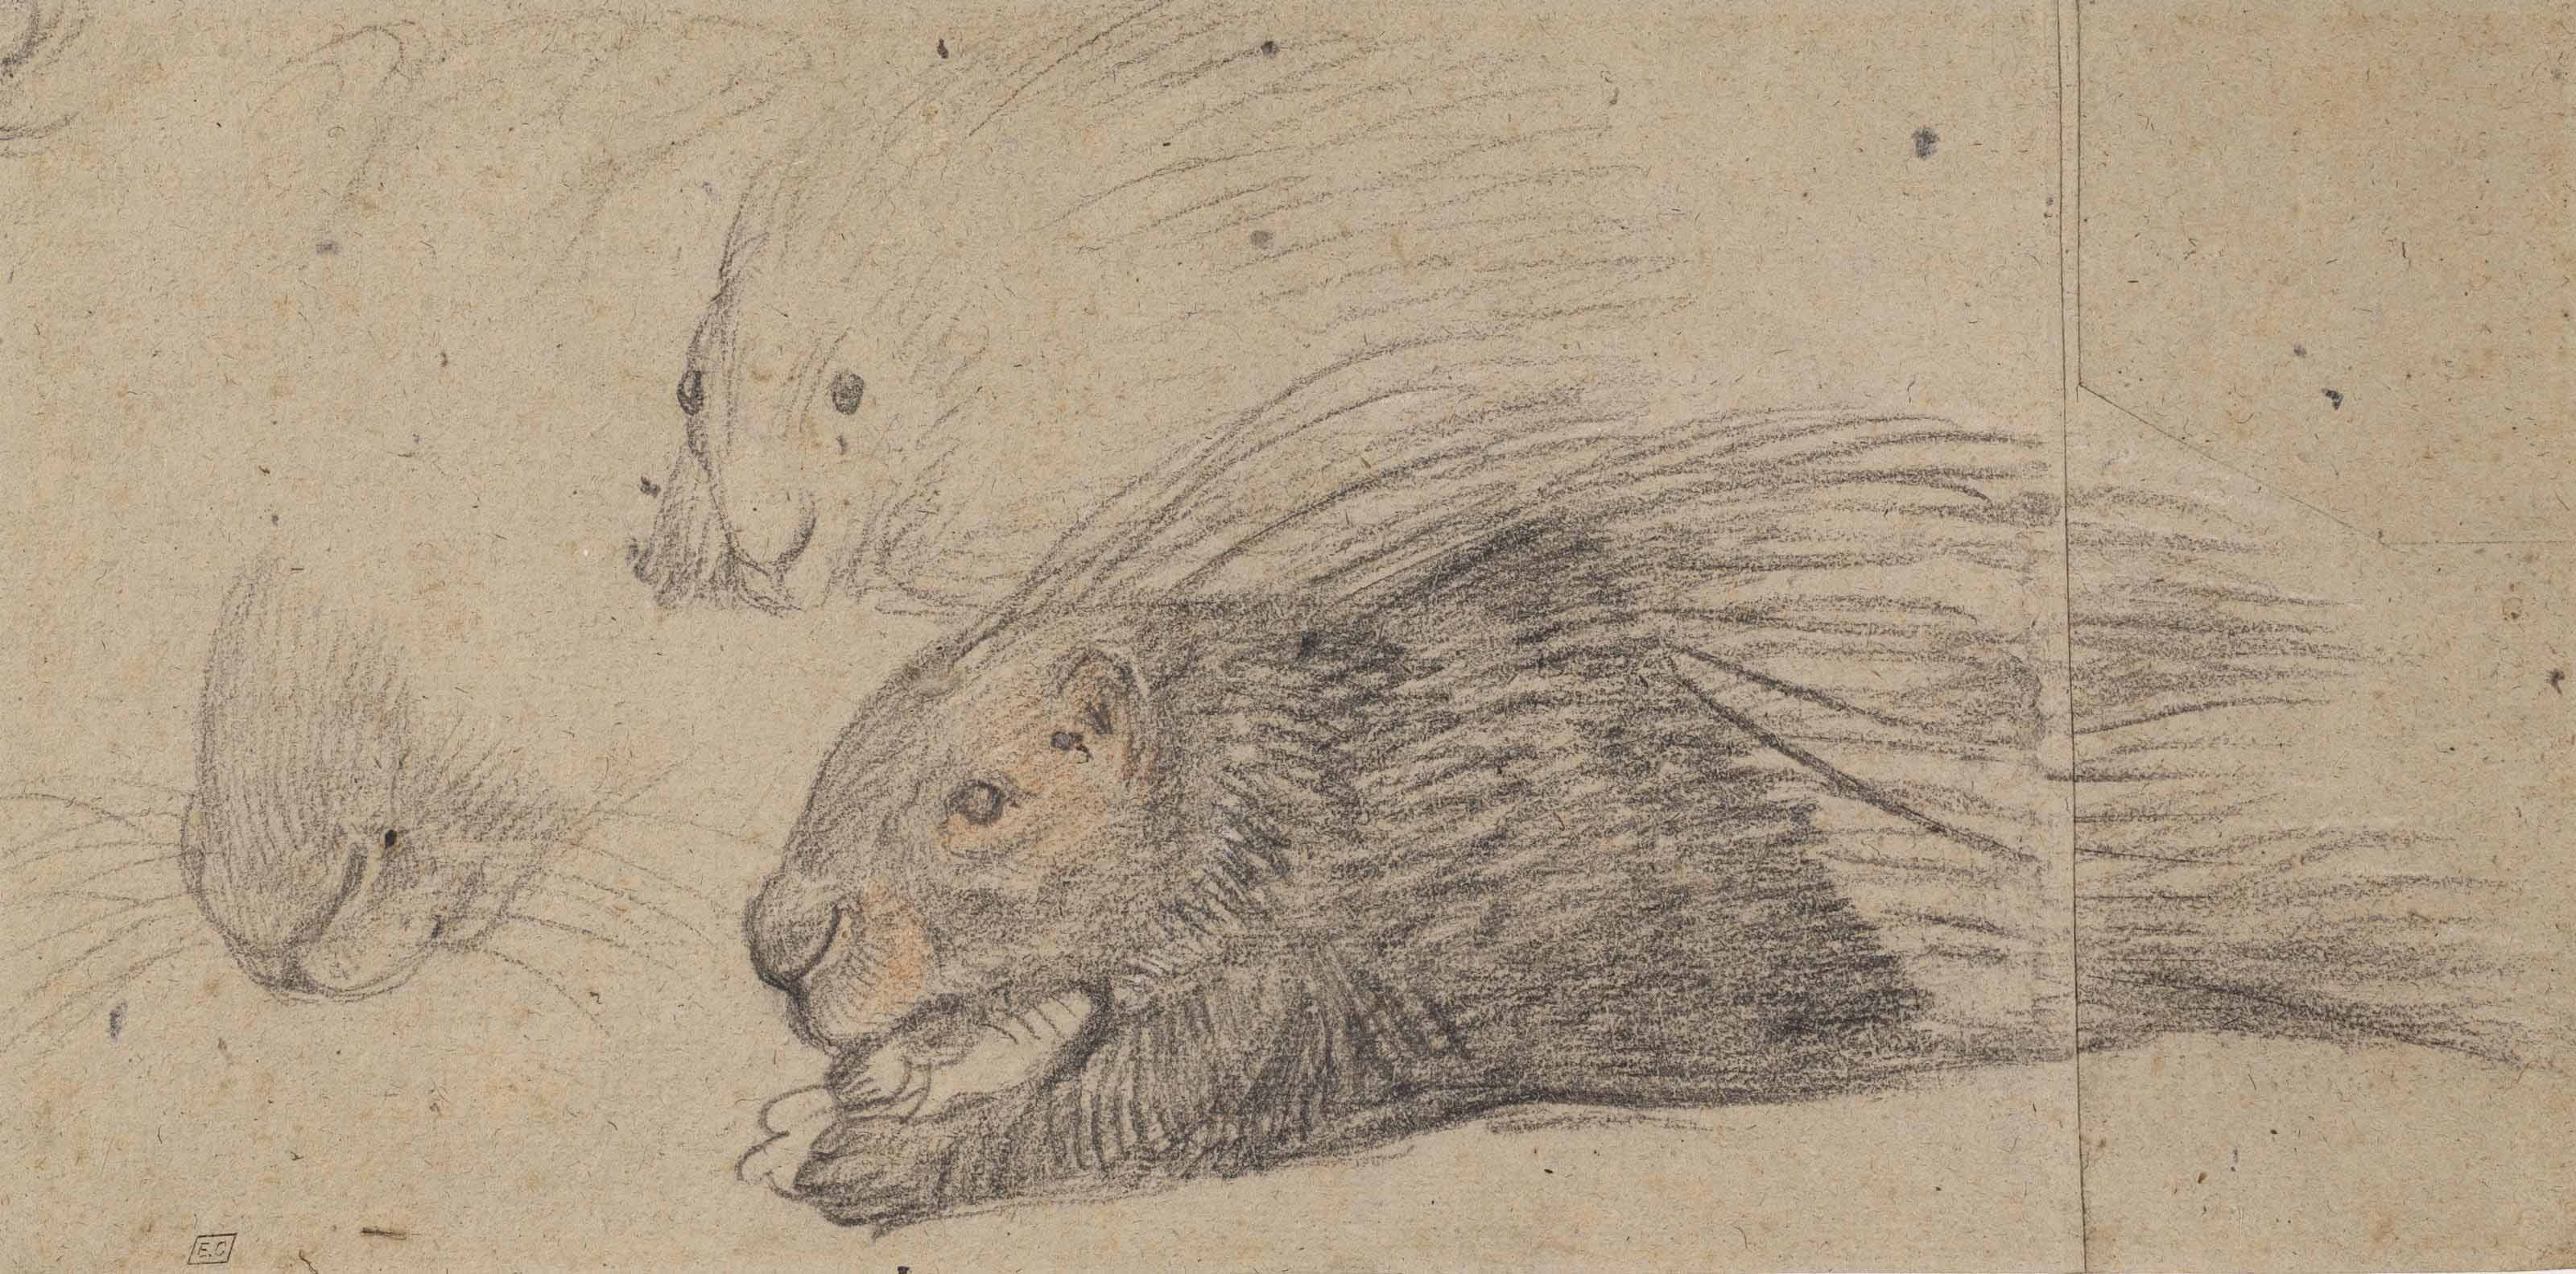 A porcupine in profile, with two subsidiary studies of its head